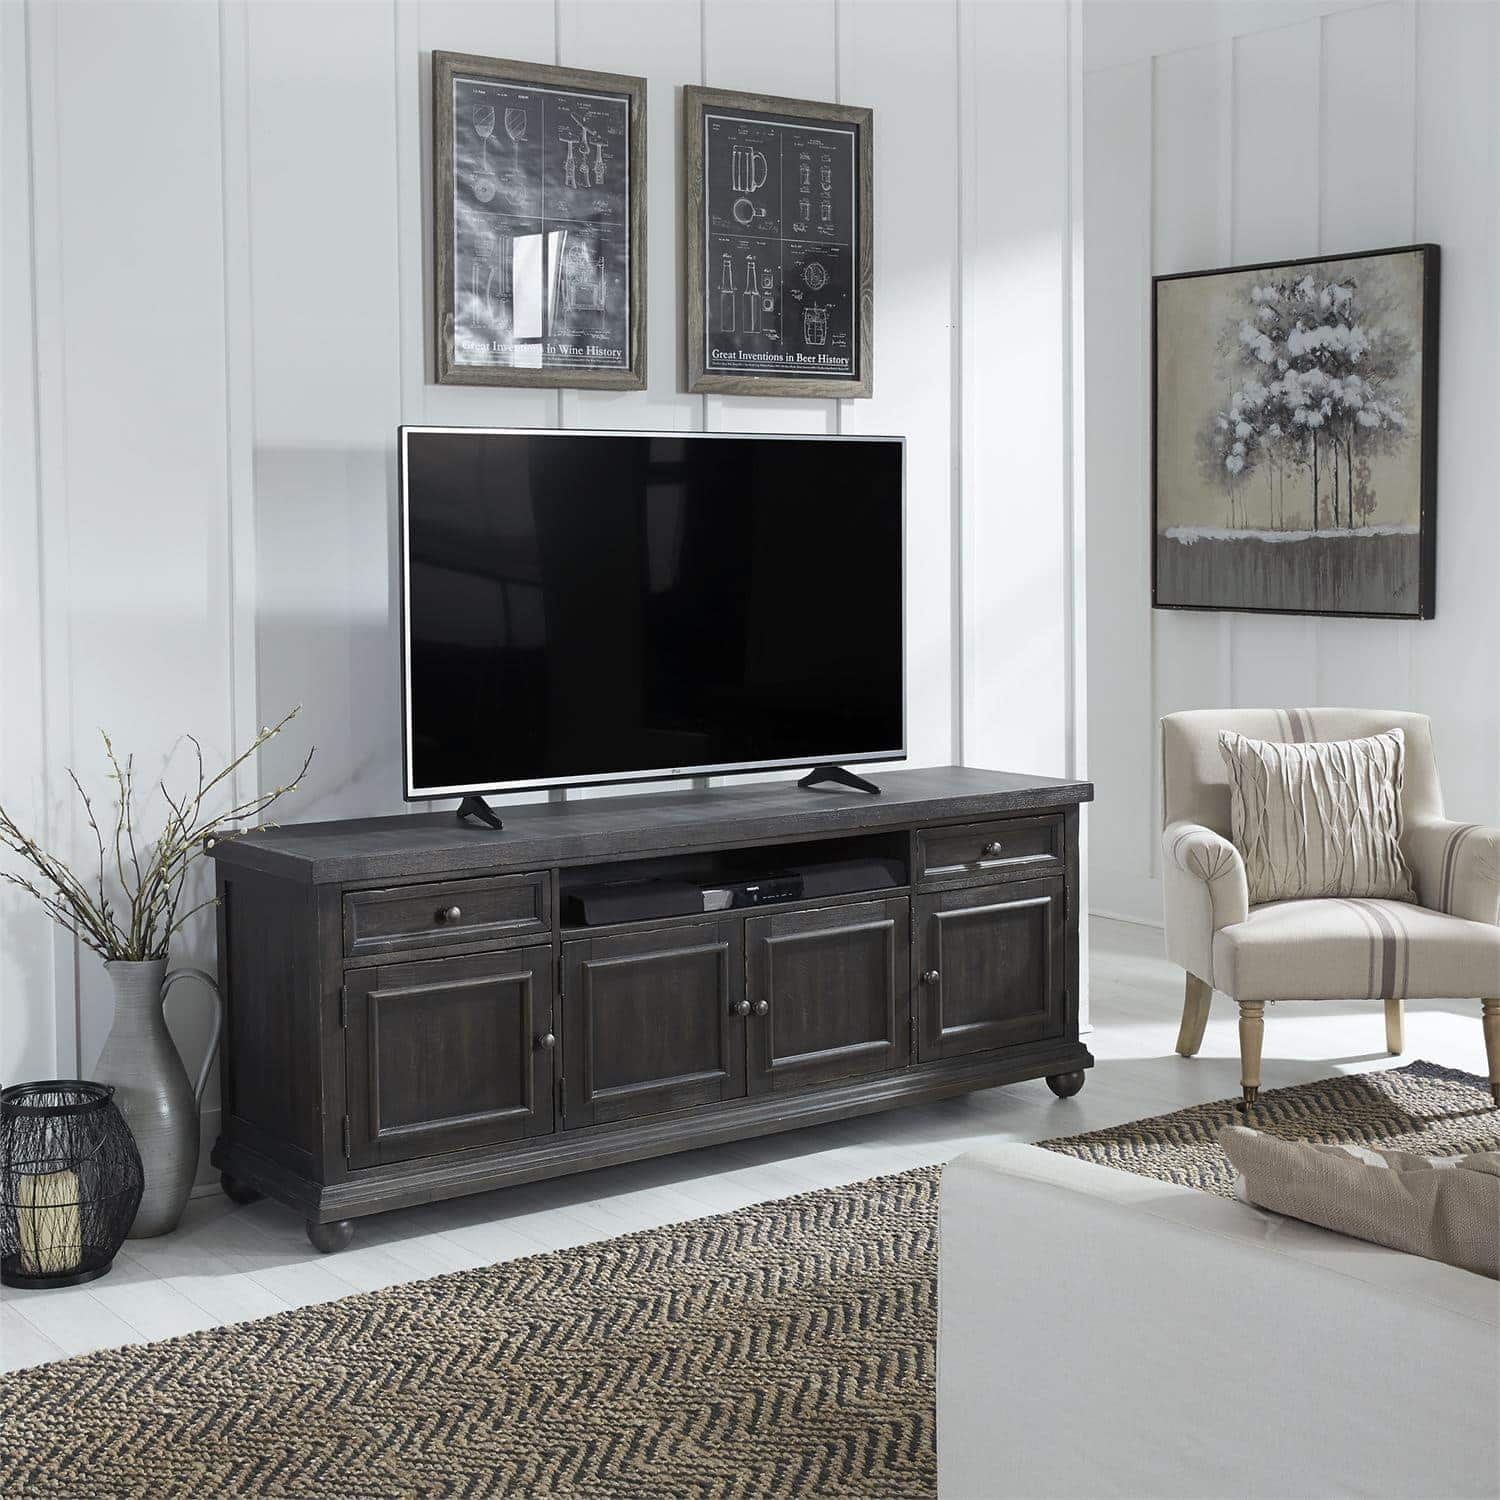 liberty furniture harvest home collection 66 inch tv console